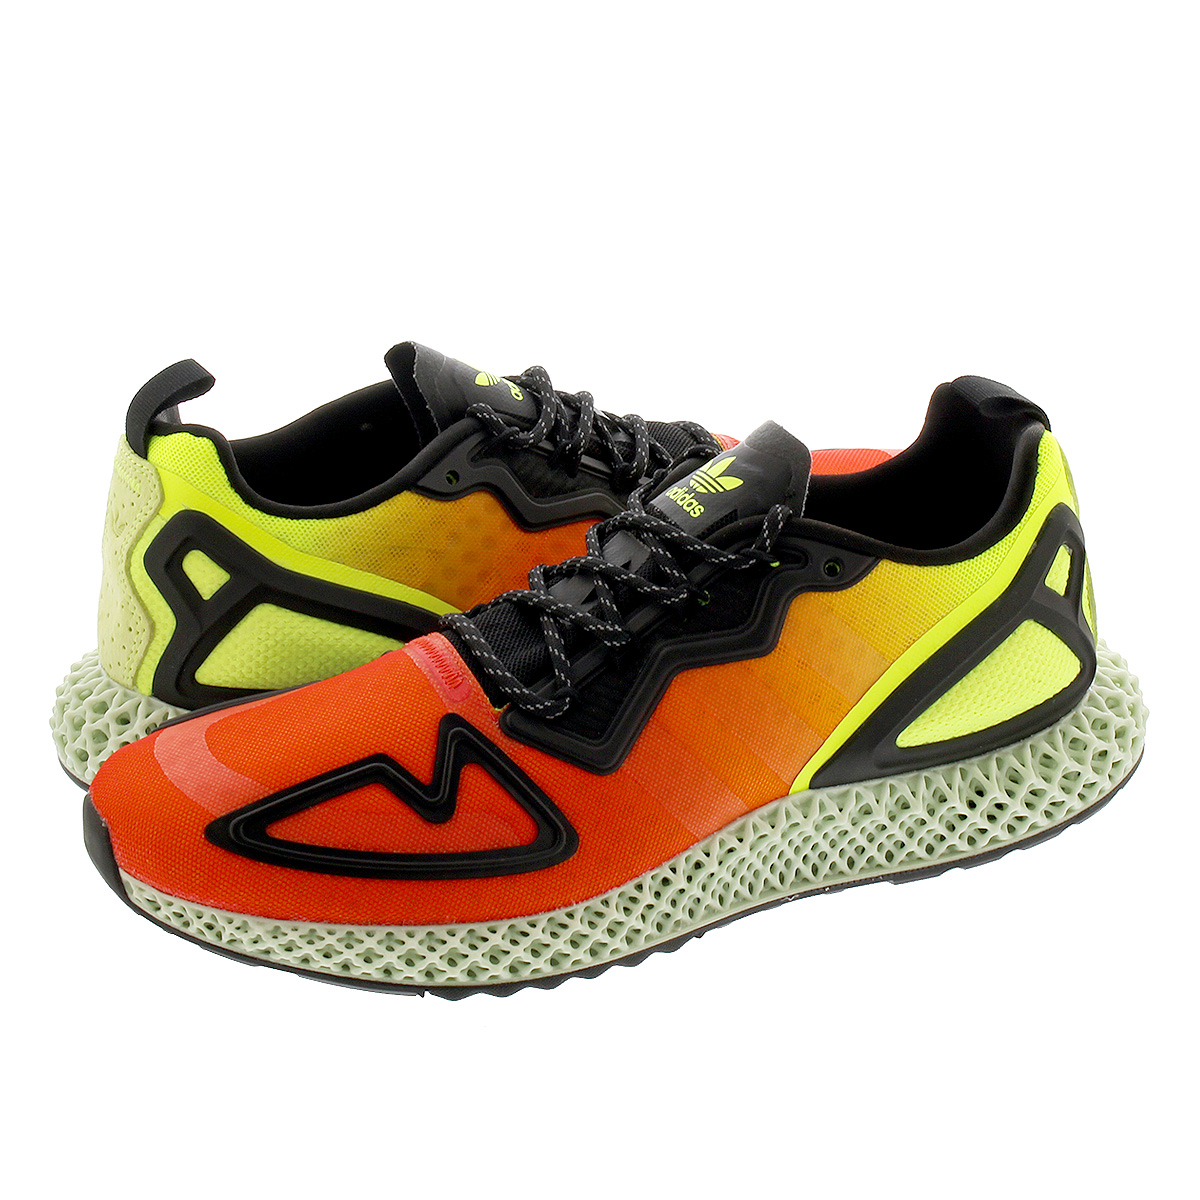 adidas ZX 2K 4D アディダス ZX 2K 4D SOLAR YELLOW/HI-RES RED/CORE BLACK fv9028